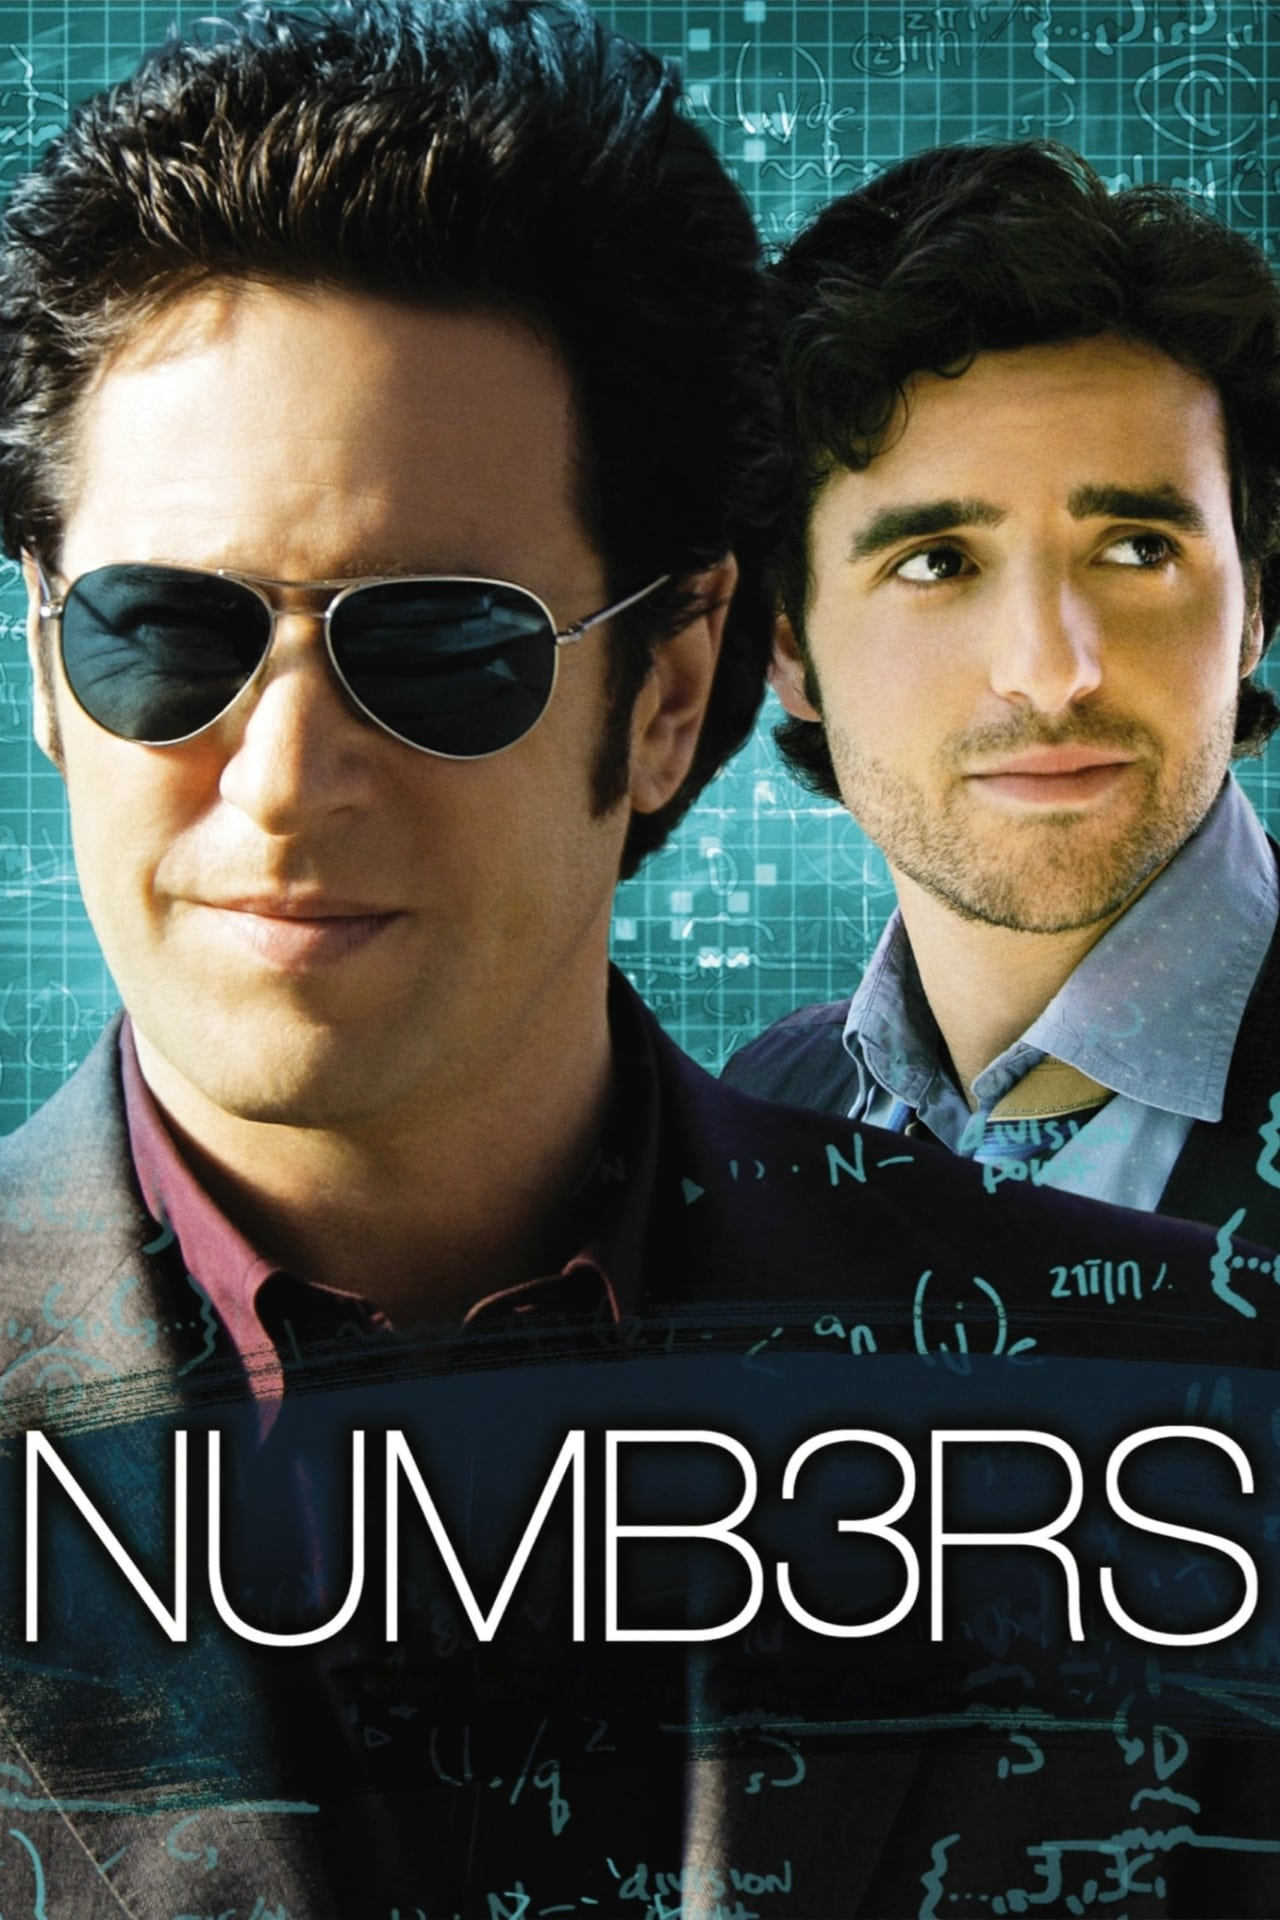 Numb3rs (season 5)